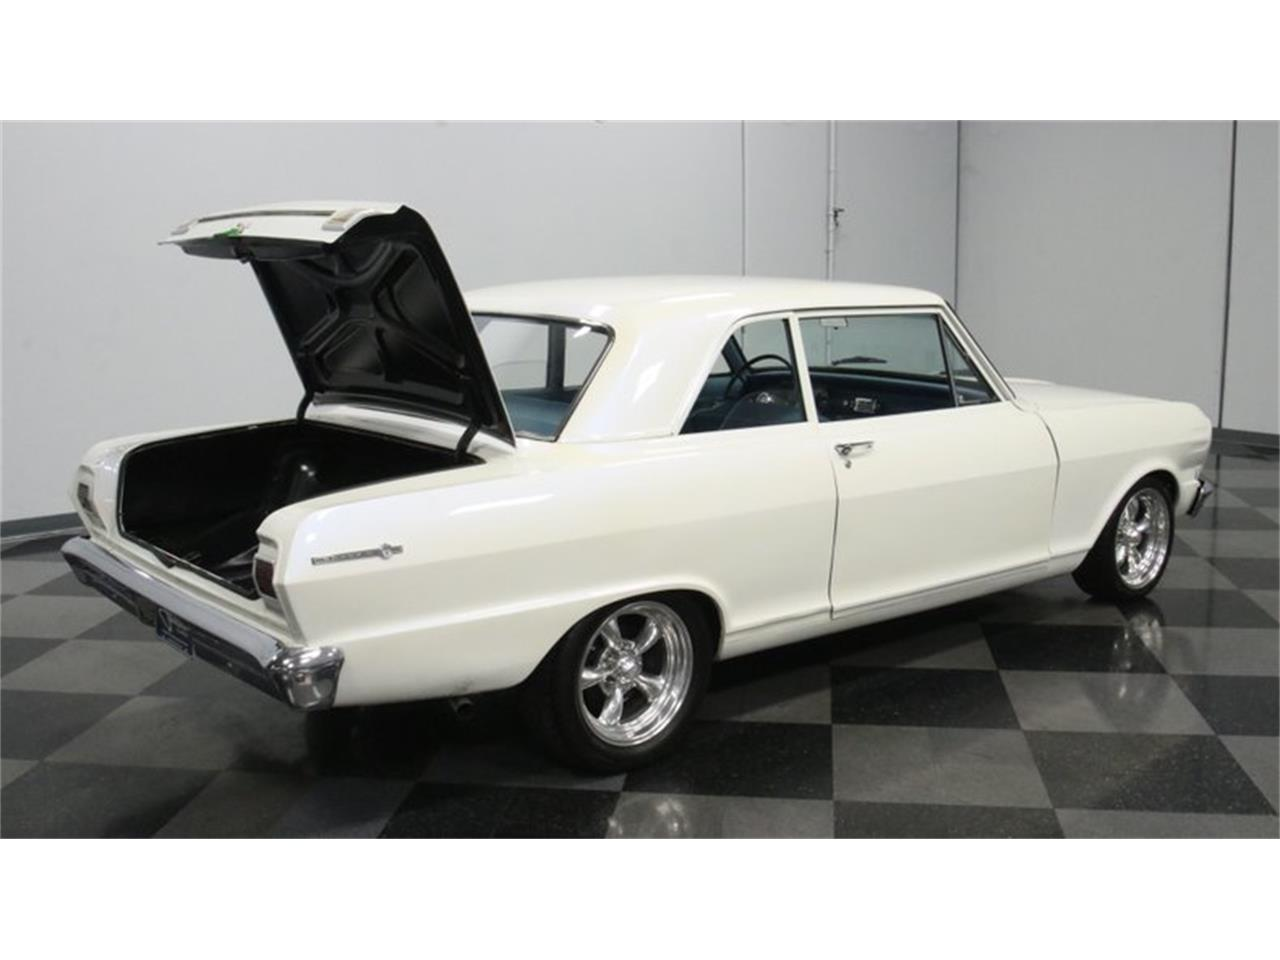 1965 Chevrolet Nova (CC-1381843) for sale in Lithia Springs, Georgia